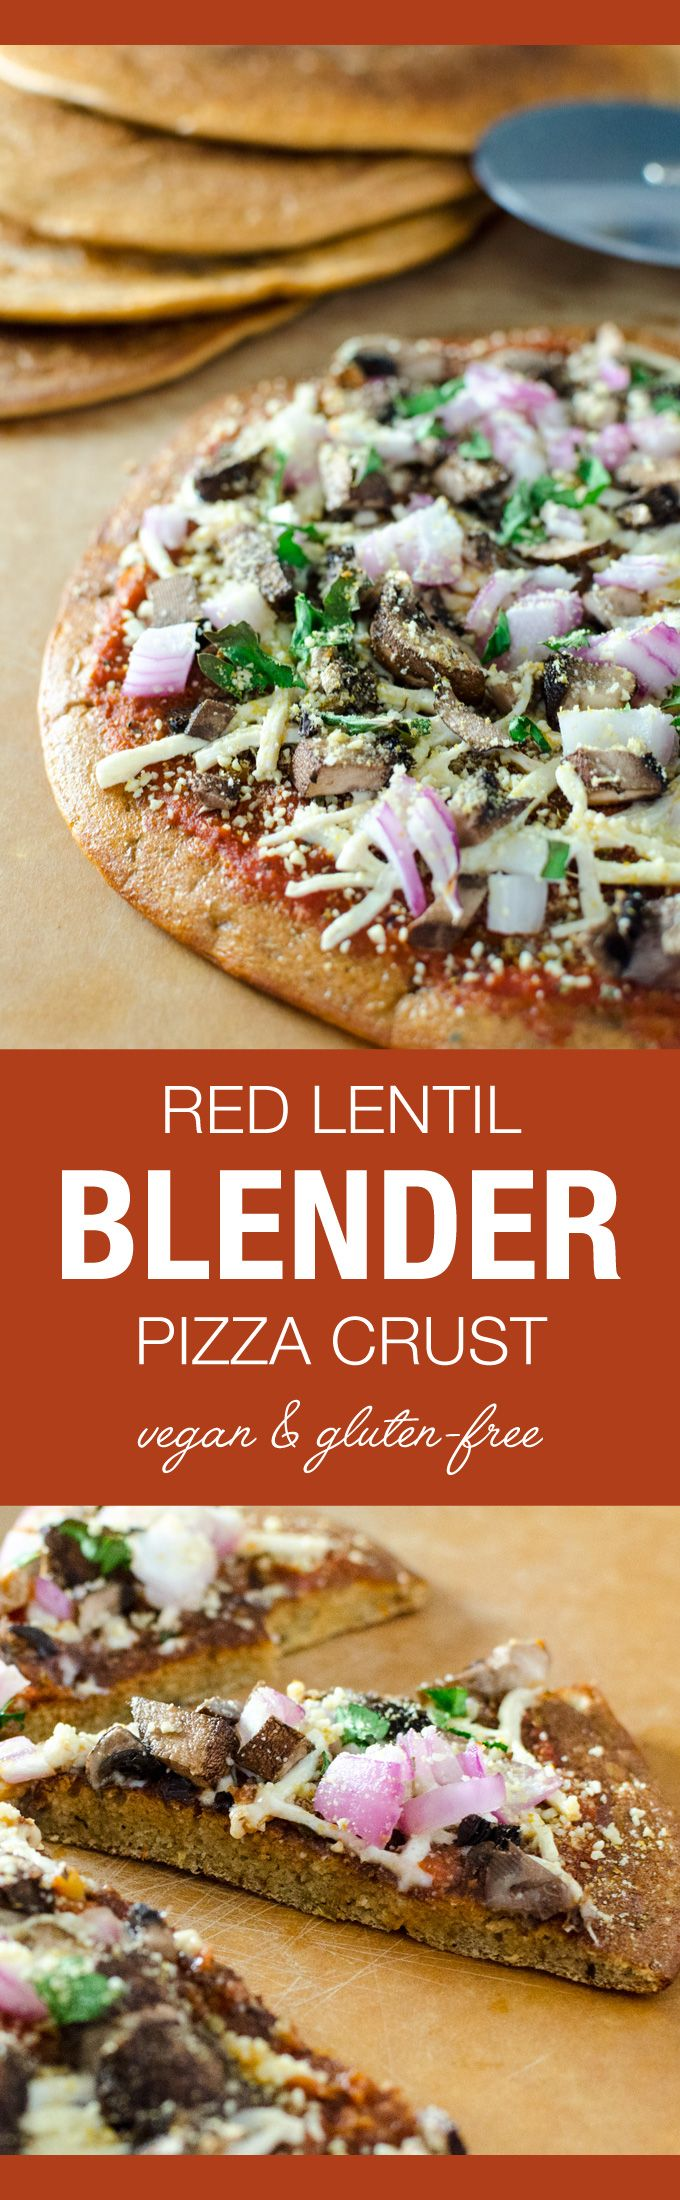 This easy blend and pour vegan gluten-free red lentil blender pizza crust recipe creates a flavorful pancake/tortilla-like crust in just over 5 minutes.